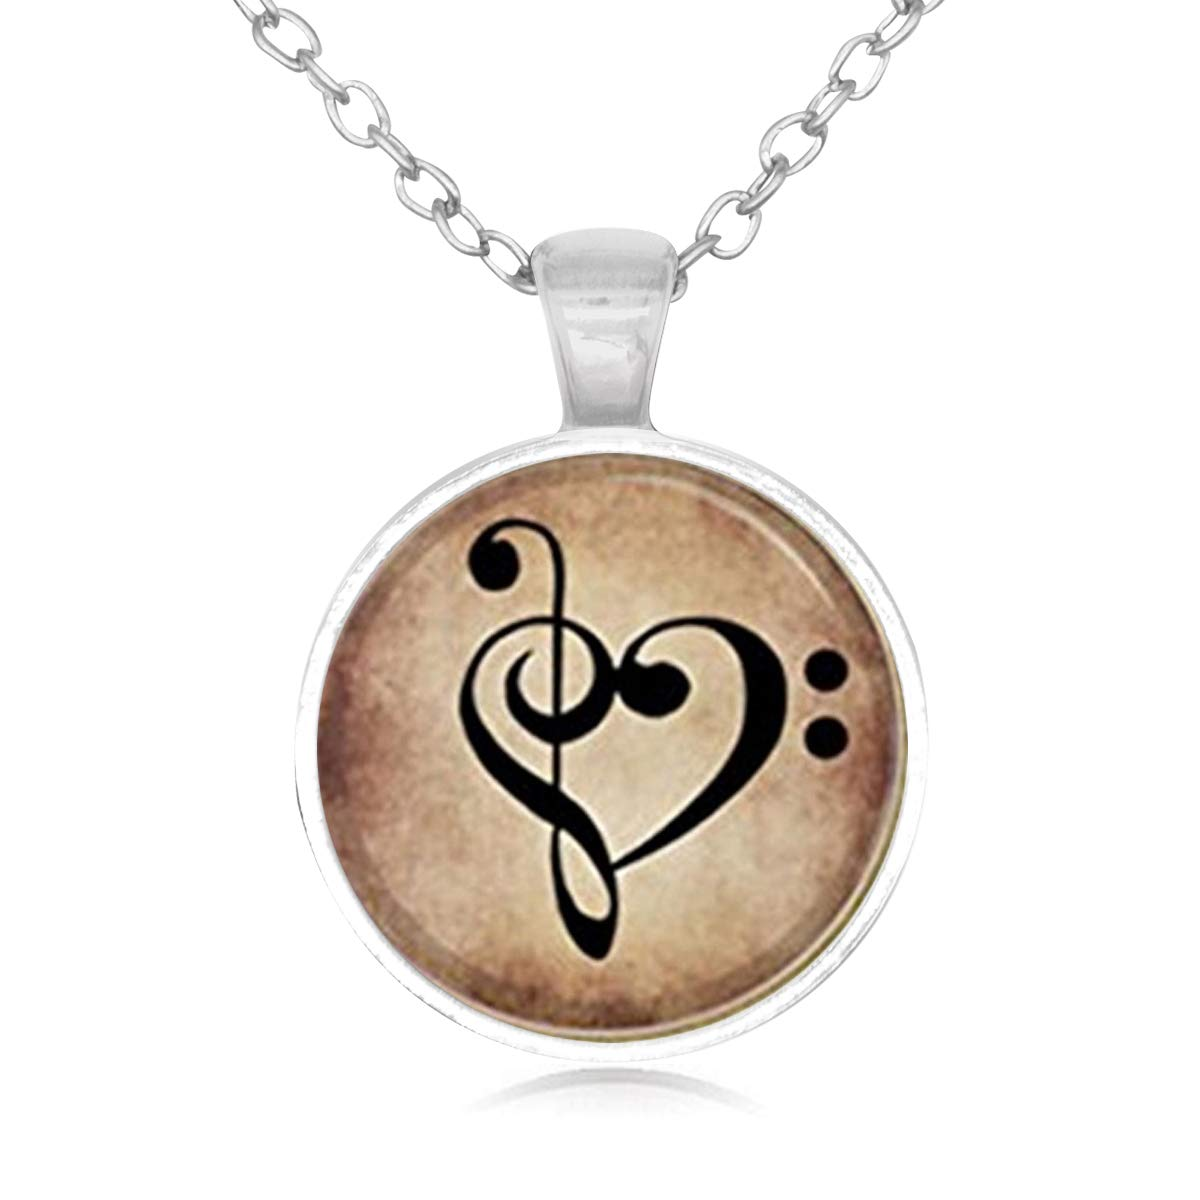 Lightrain Bass Treble Clef Heart On Dark Parchment Pendant Necklace Vintage Bronze Chain Statement Necklace Handmade Jewelry Gifts